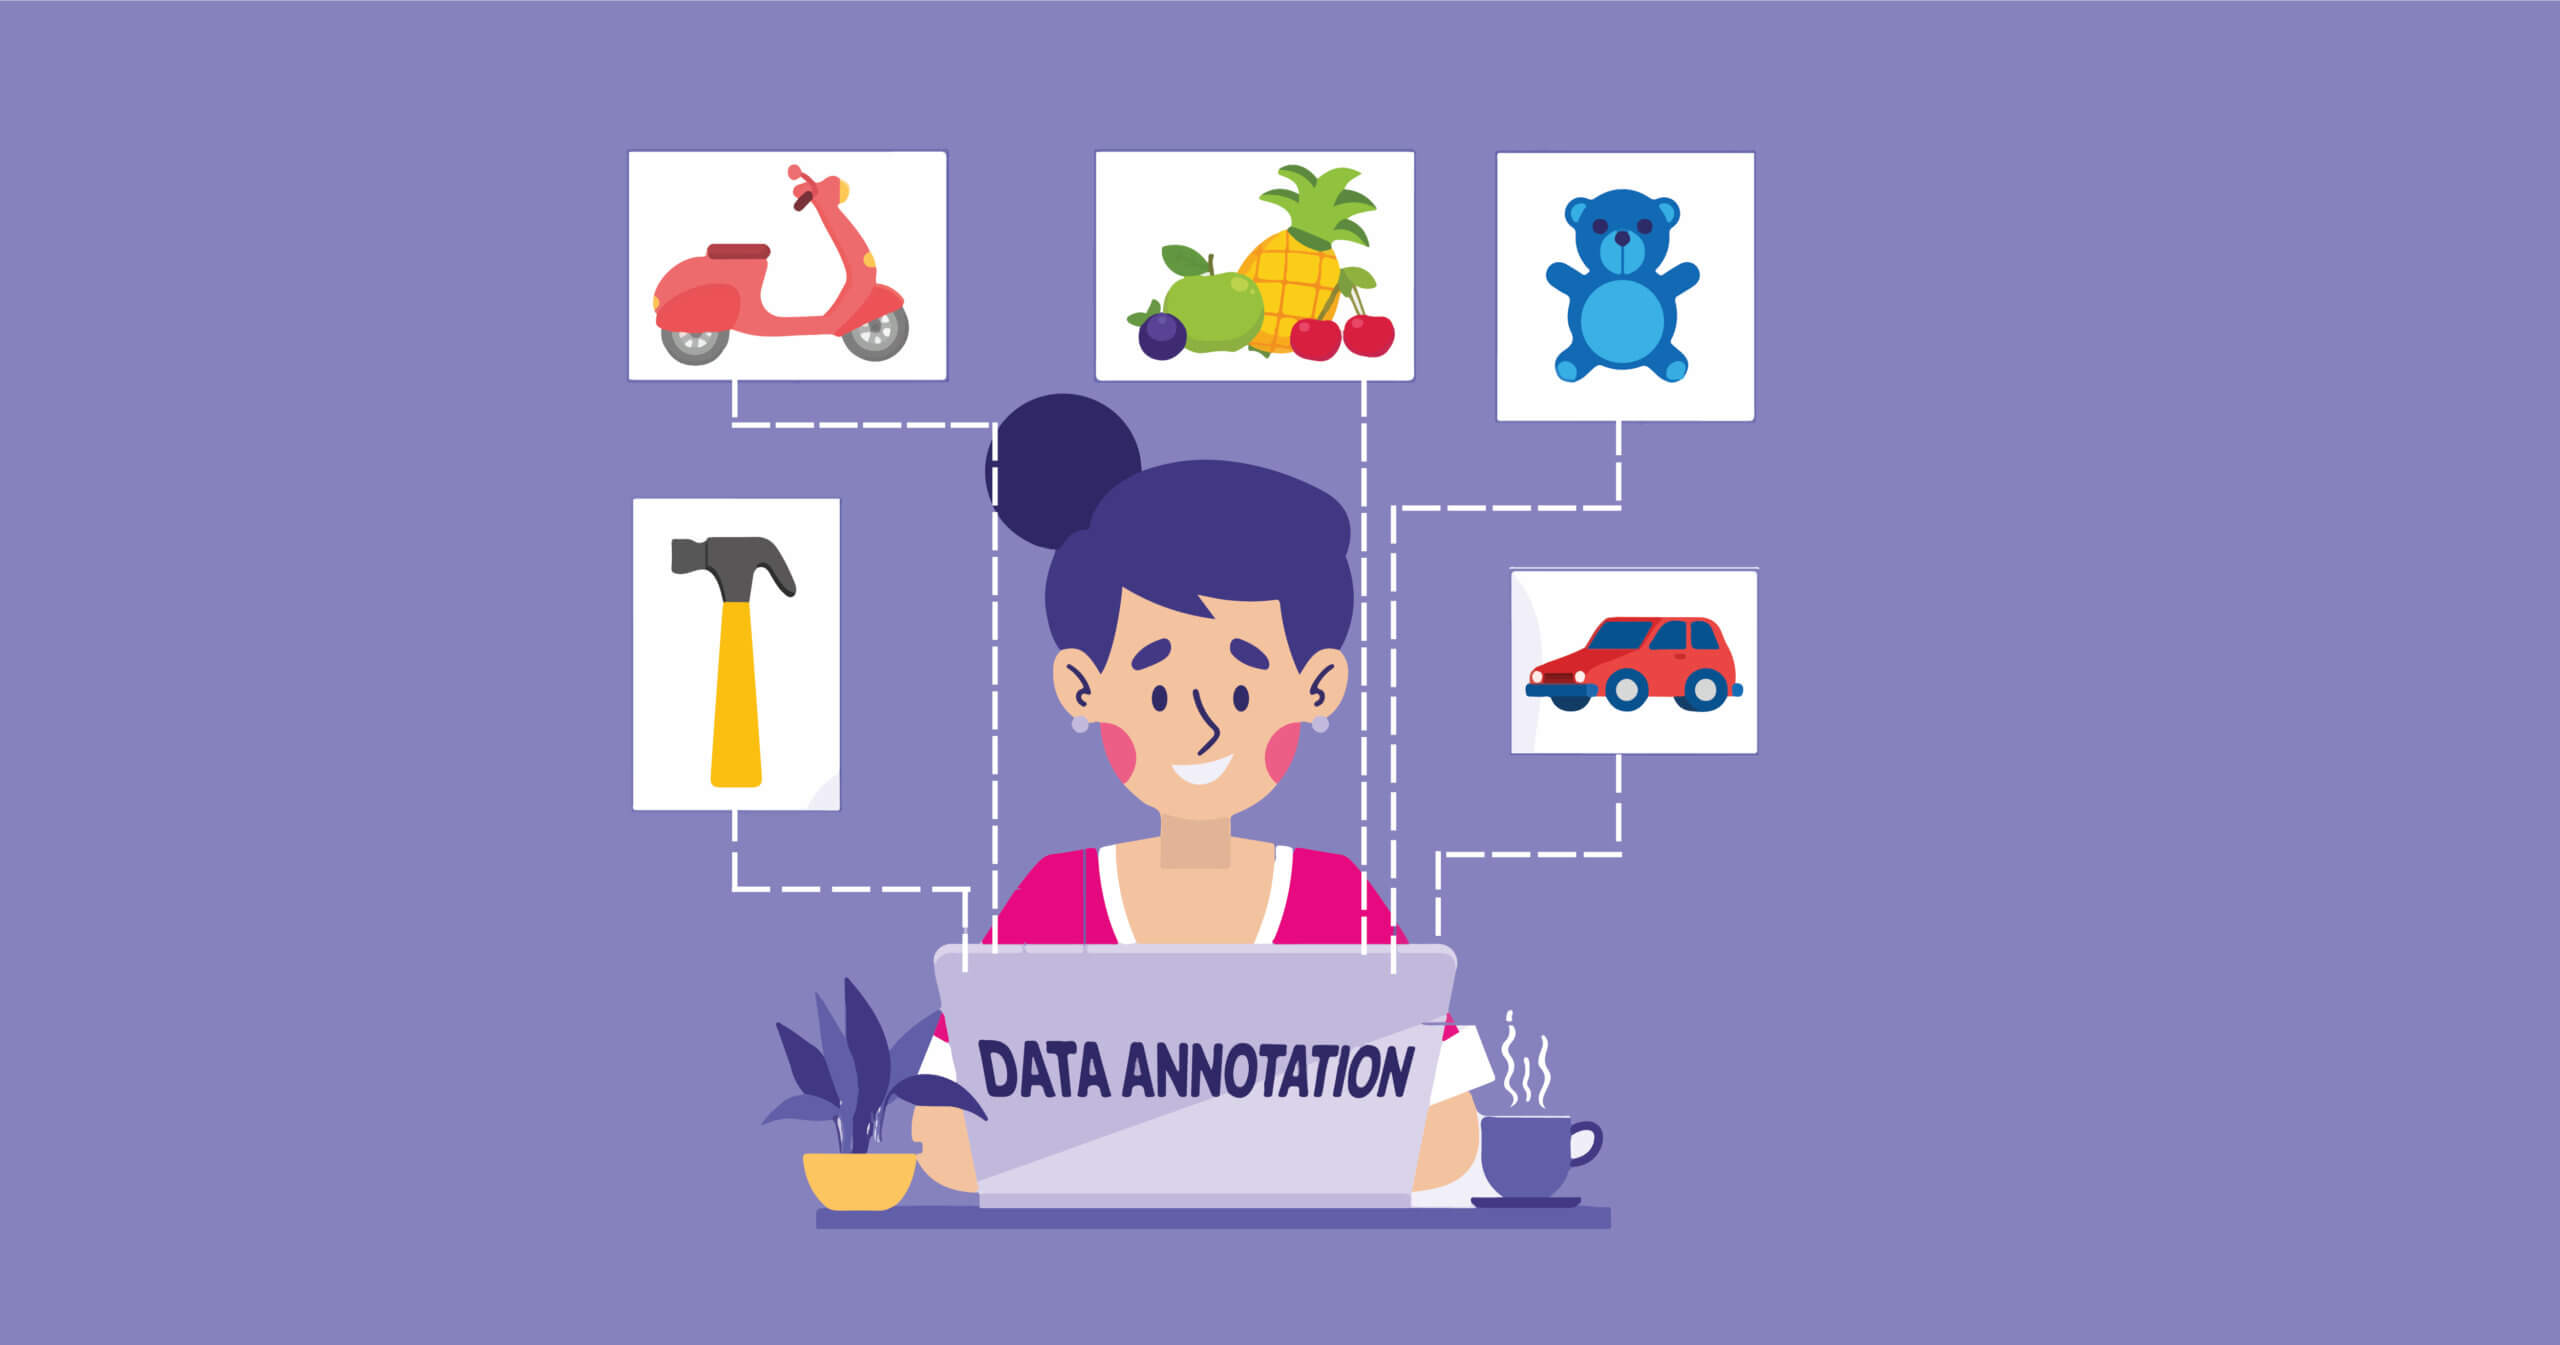 What does it mean to Annotate Data?